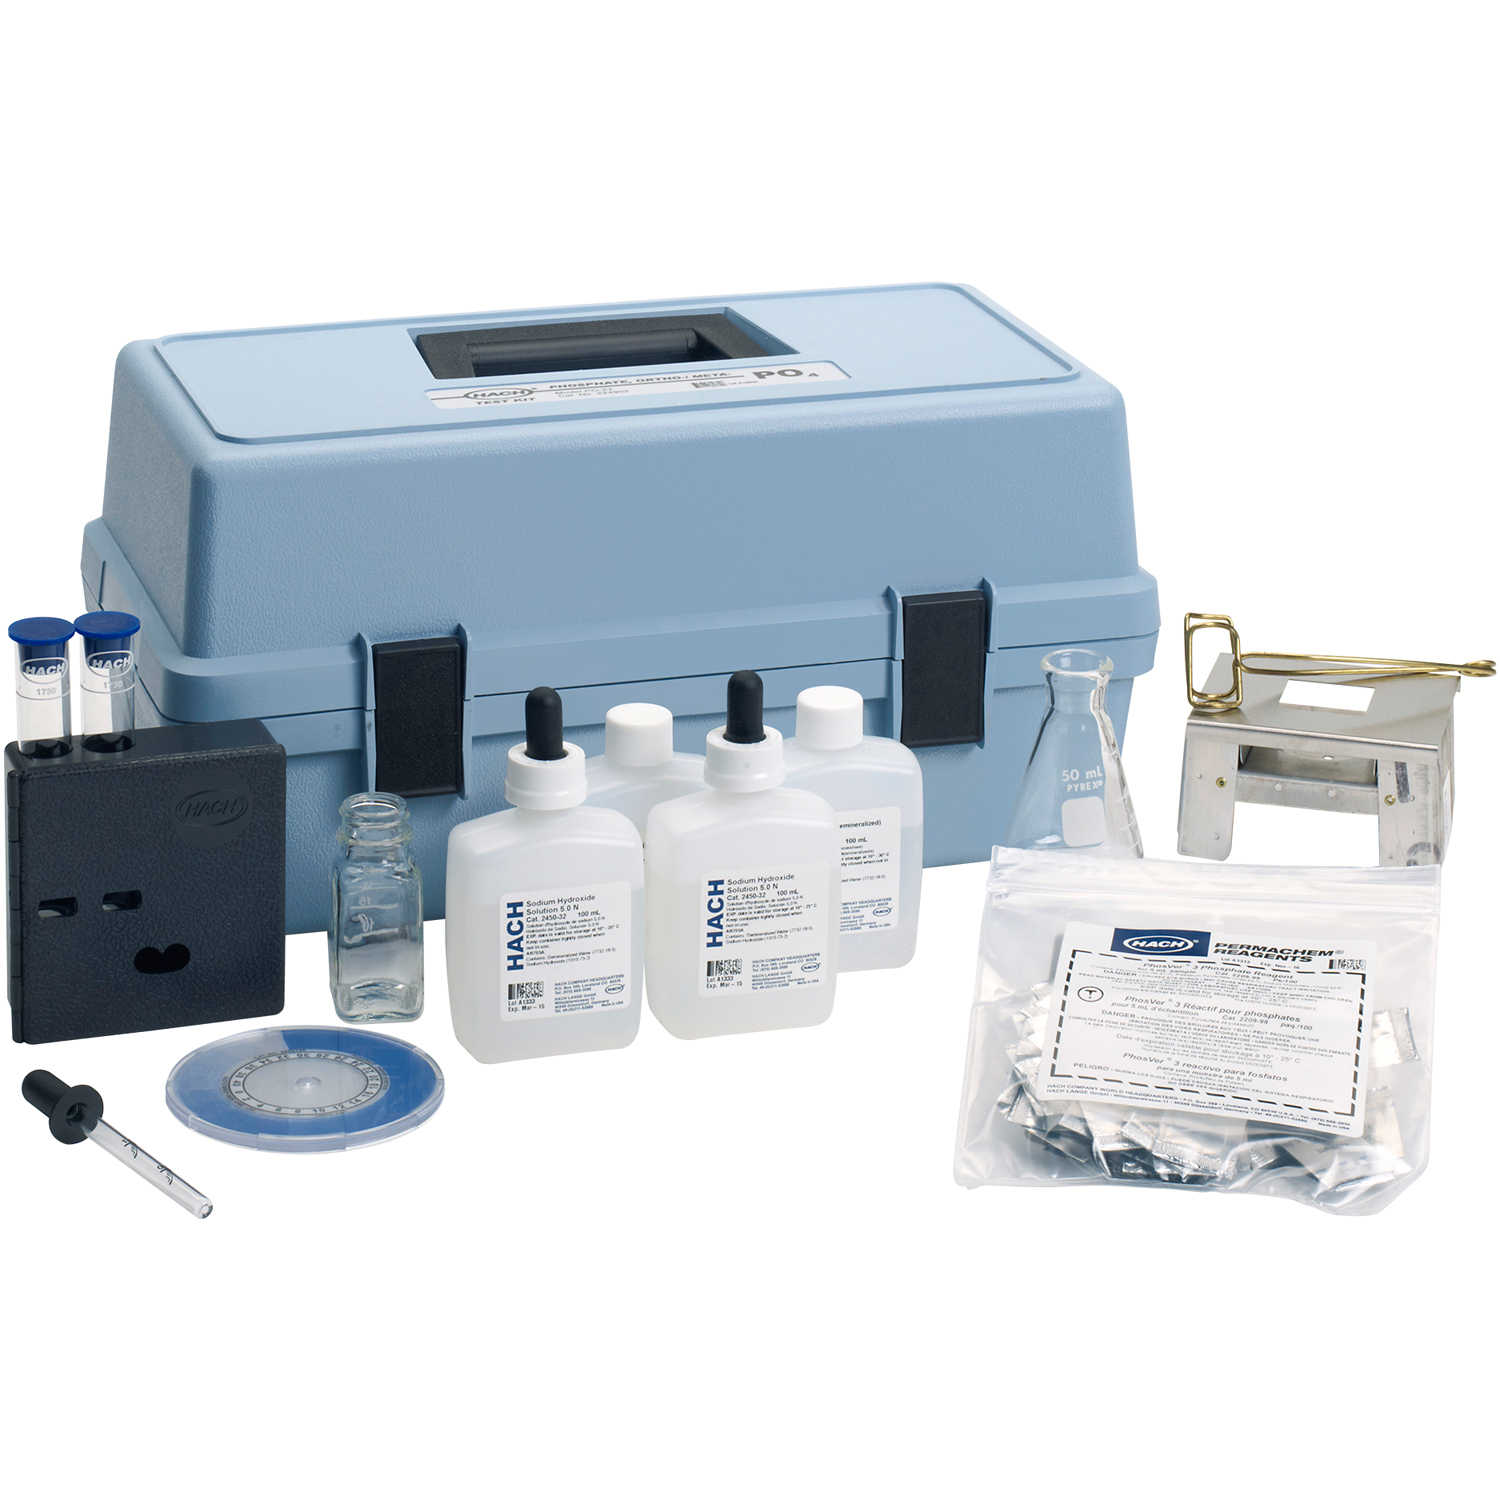 Hach Phosphate Test Kit Forestry Suppliers Inc